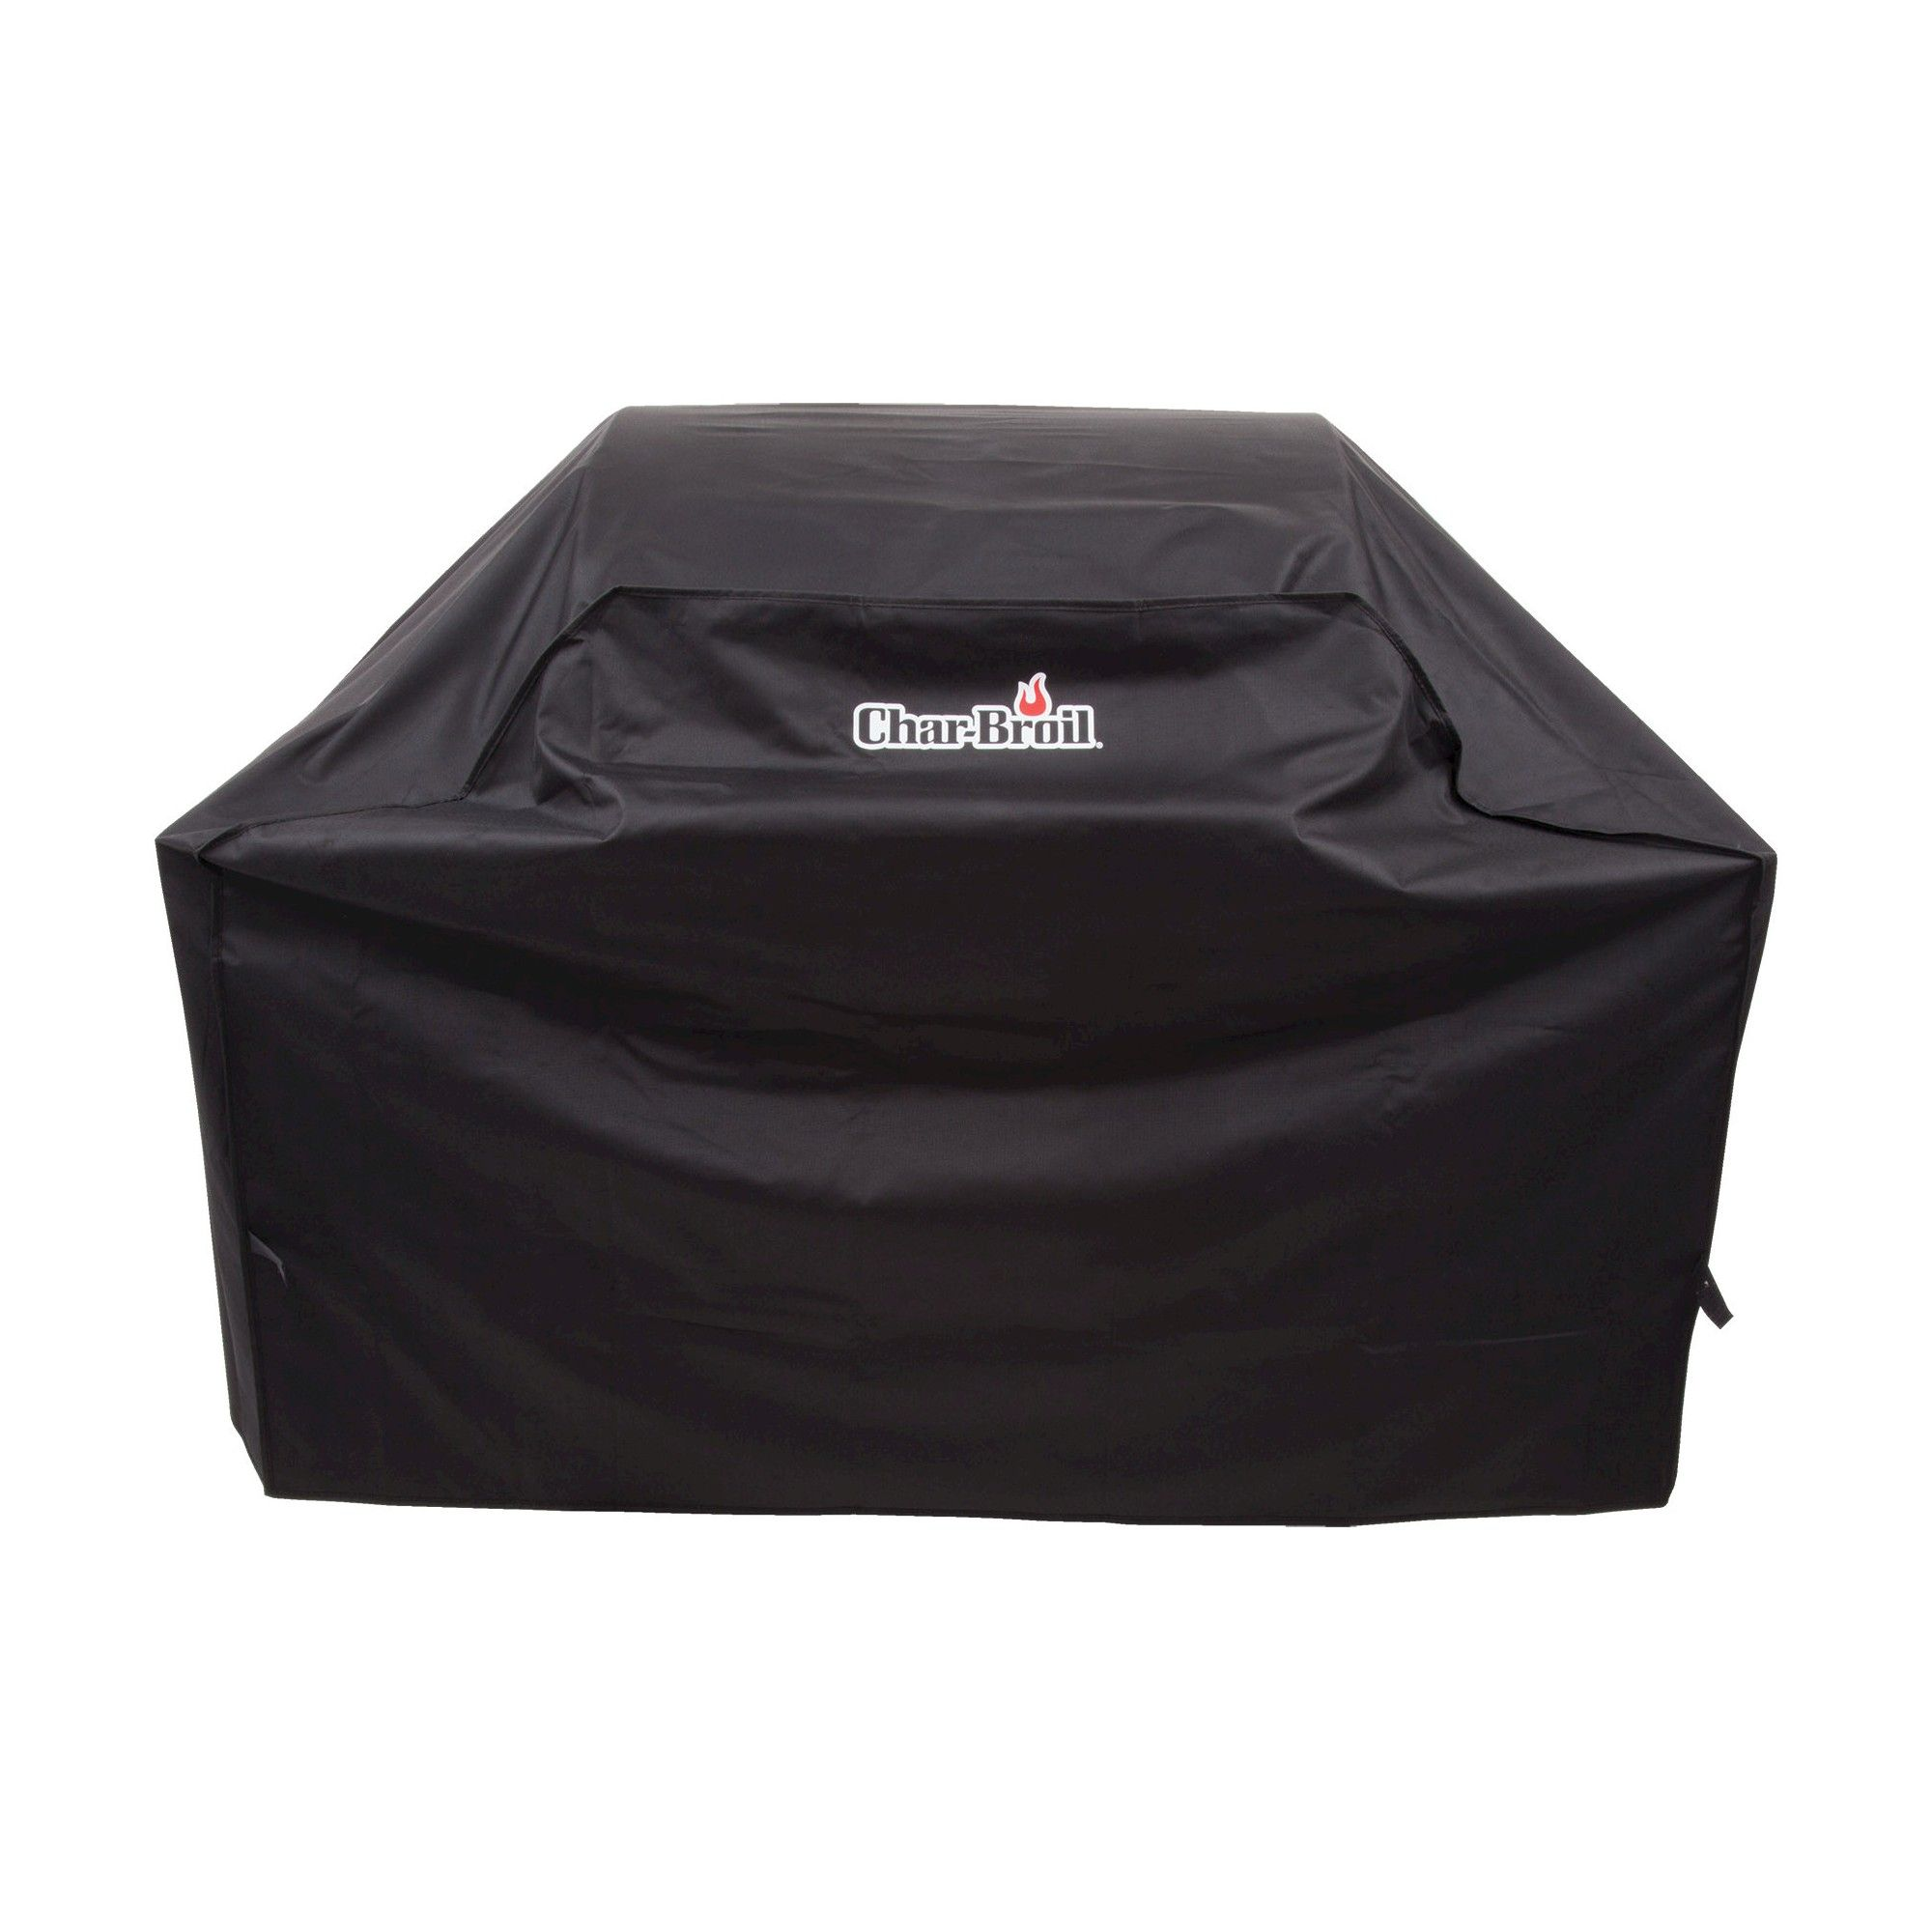 Char Broil 2 3 Burner All Season Cover Black